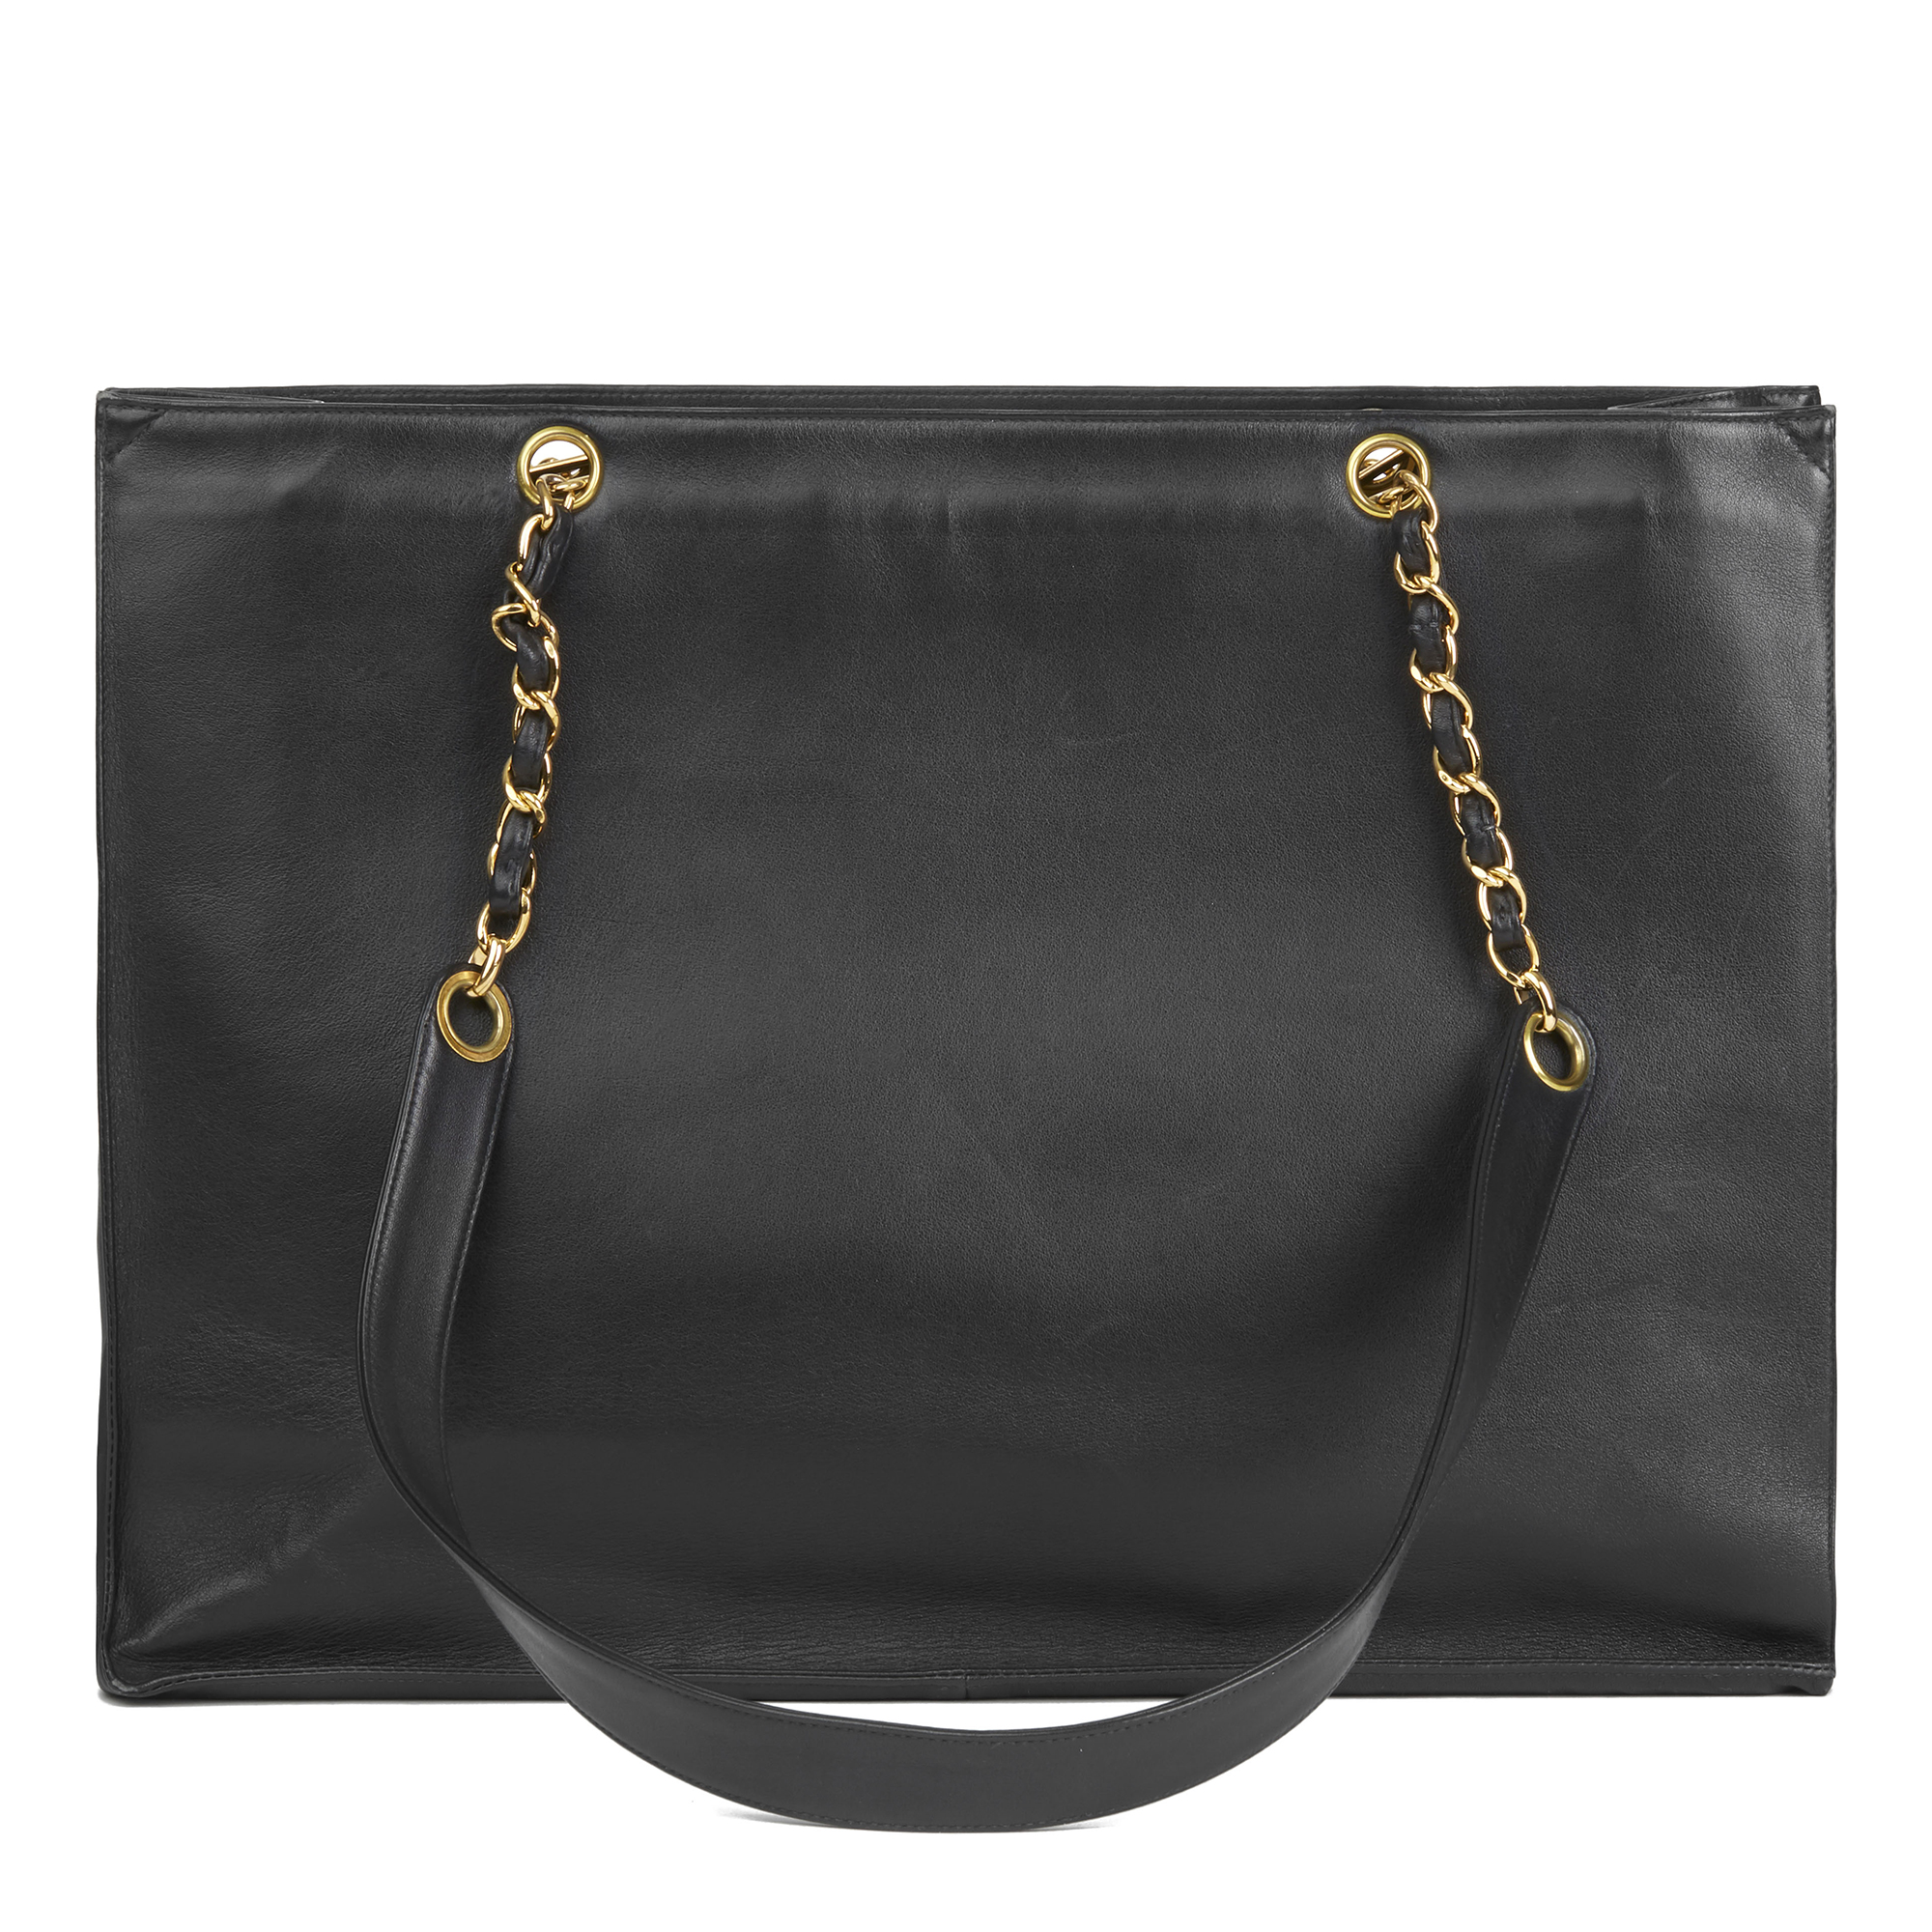 64c1cf805 Details about CHANEL BLACK LAMBSKIN VINTAGE JUMBO XL TIMELESS SHOPPING TOTE  HB2787